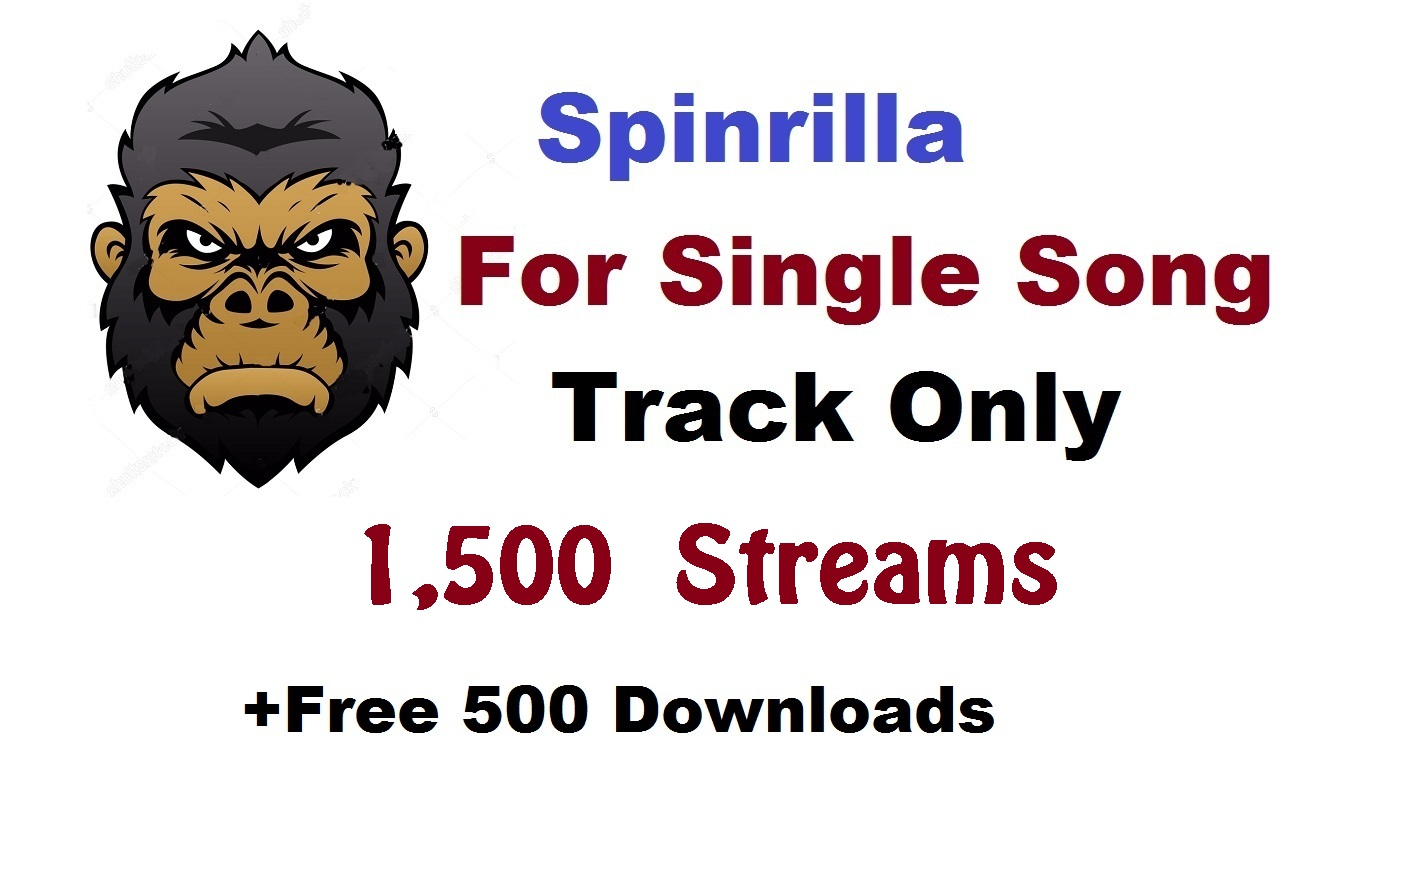 Single 2,000 play + 500 download for single track song spinrilla streams